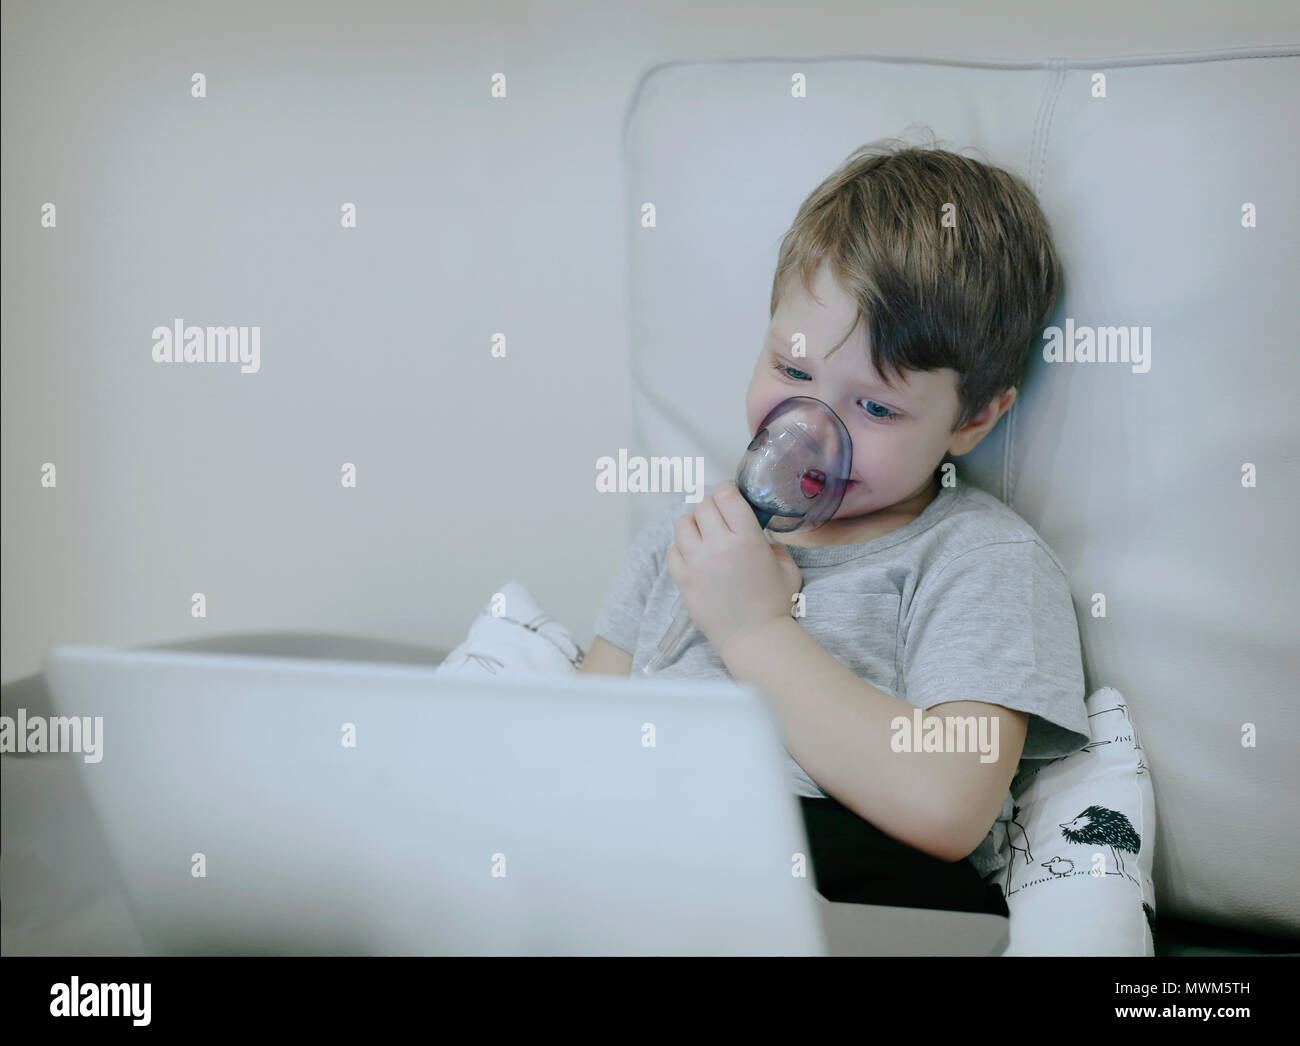 Smiling chid with pediatric nebulizer mask looking at laptop scr - Stock Image